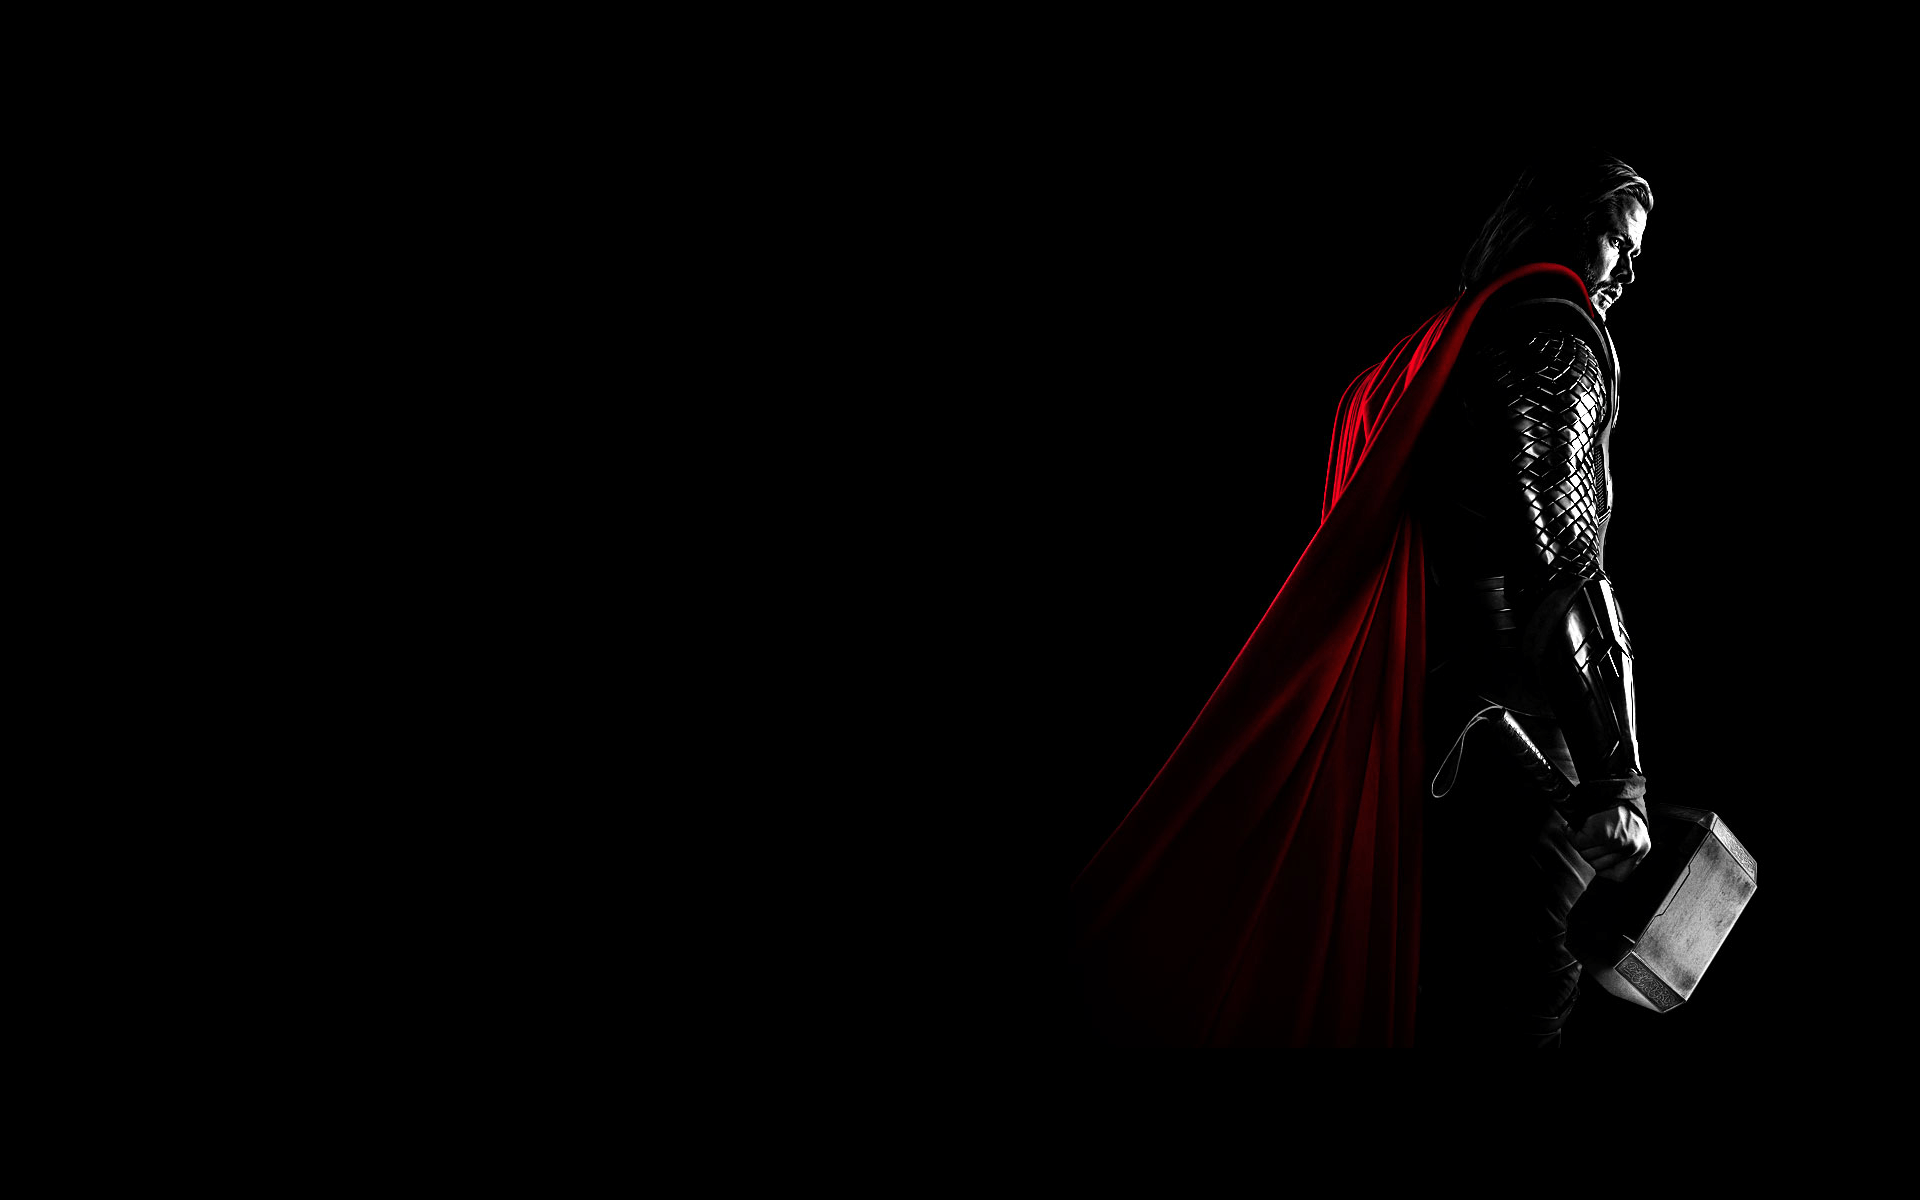 Thor wallpapers wallpaper cave - Free thor wallpaper ...